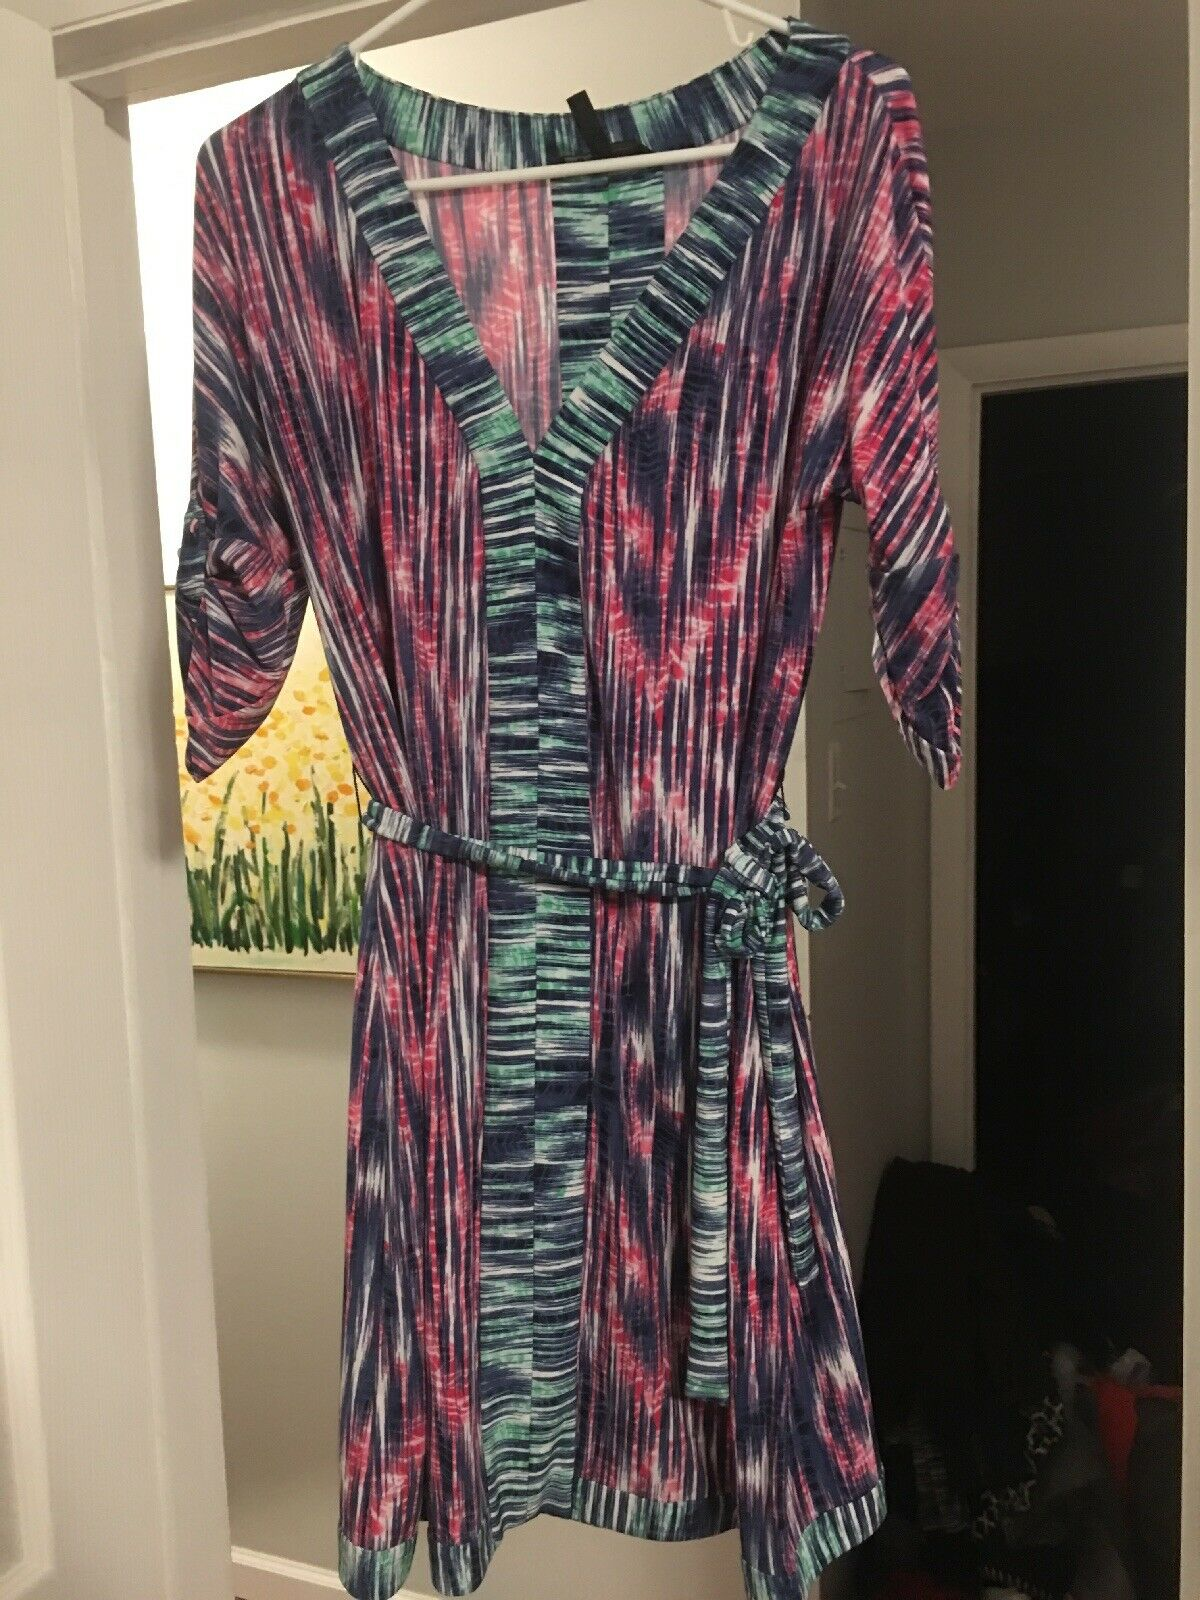 Bcbg Max Azria Faux Wrap Dress S Pink Green bluee 3 4 Sleeves Knee Length